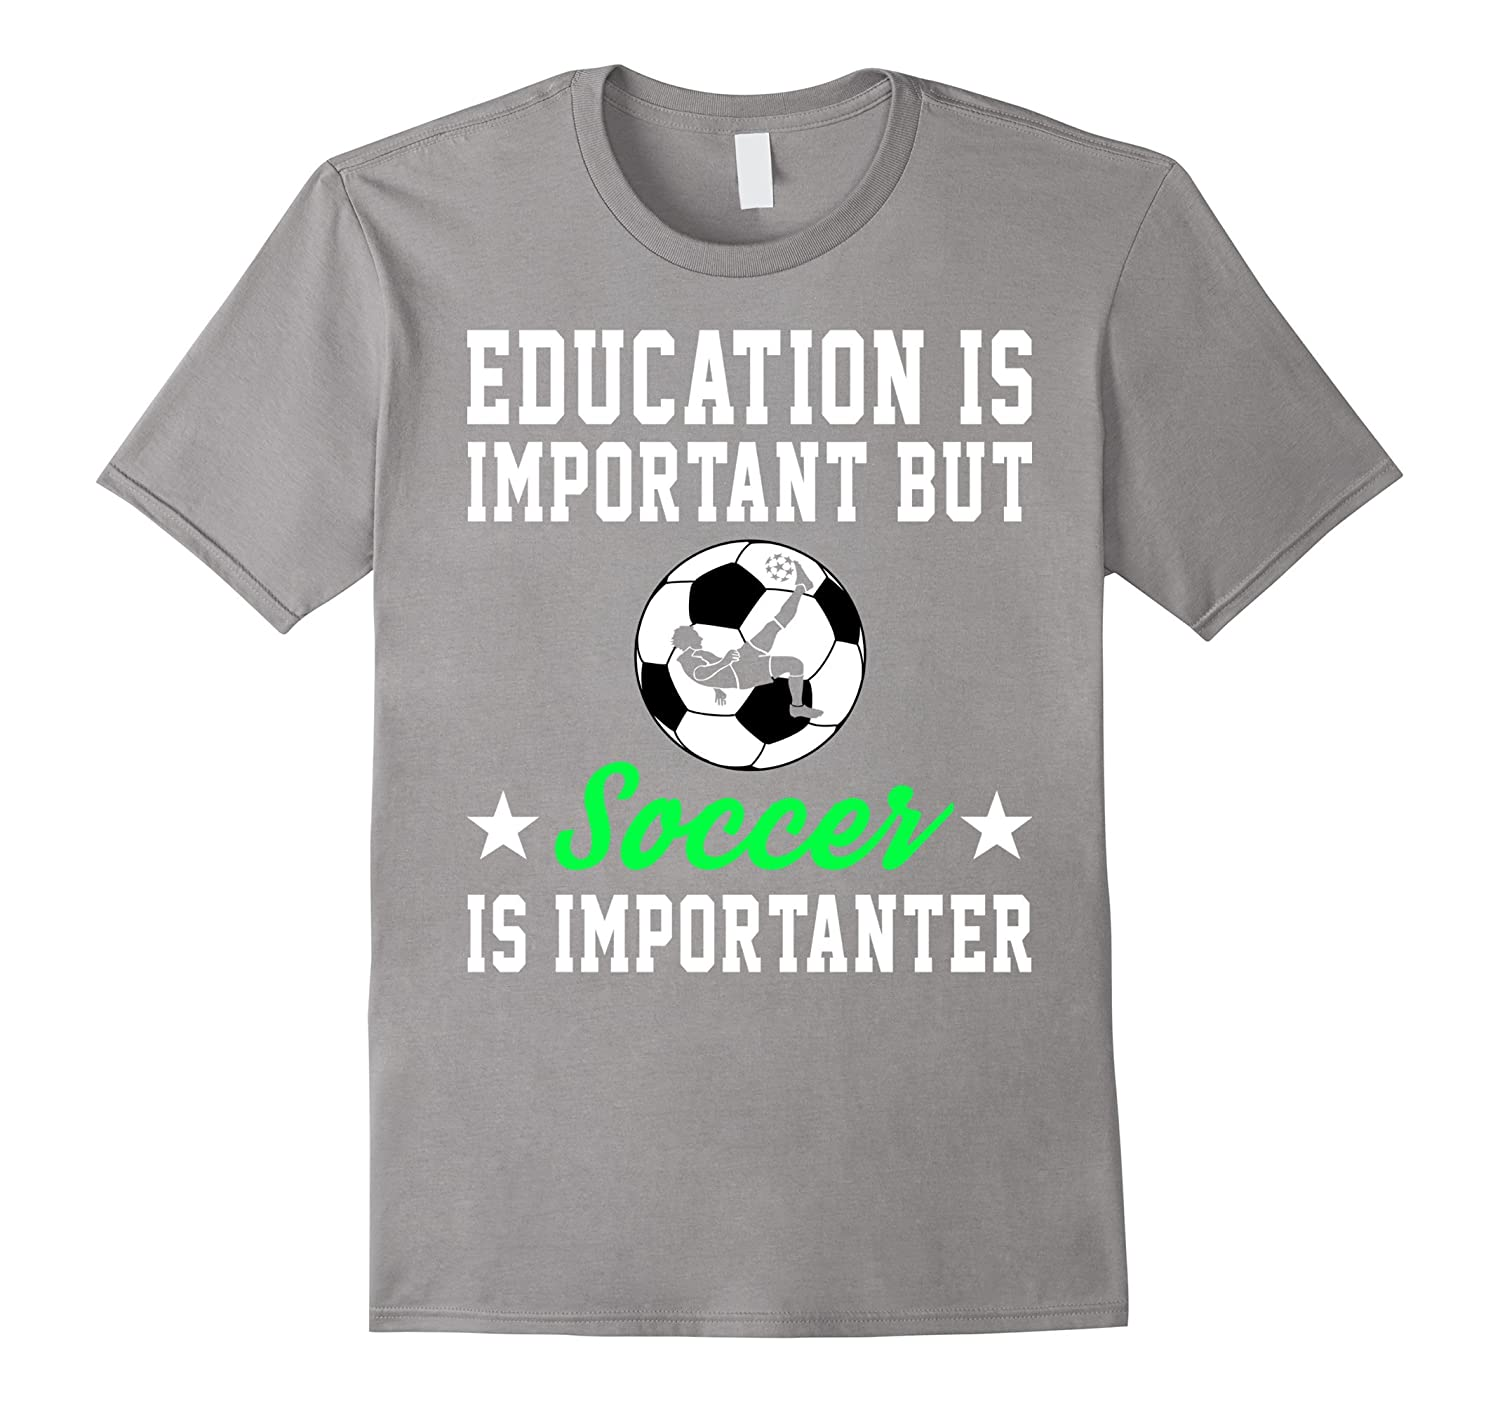 453d8b900c6 Education Is Important But Soccer Is Importanter Funny Shirt-CD ...